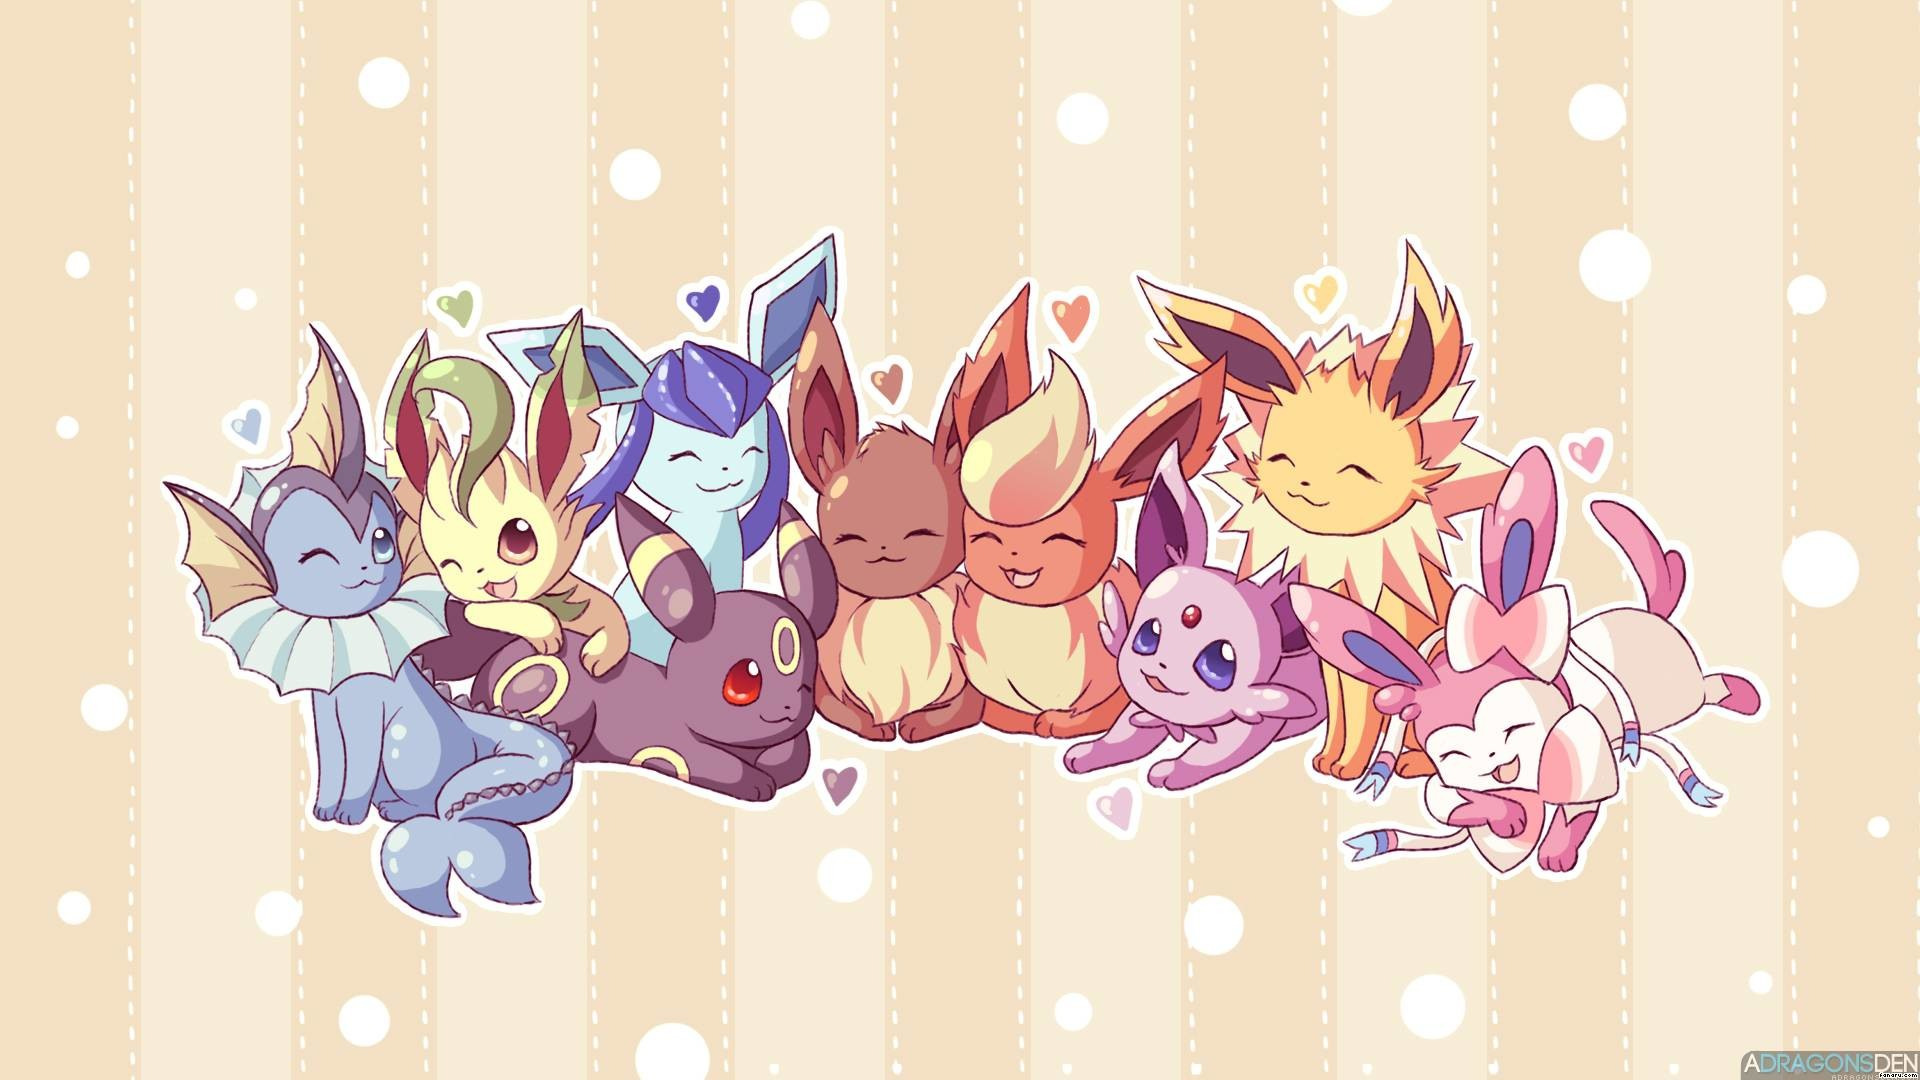 % Quality HD Pokemon Images, Wallpapers for Desktop 1920×1080 Pokemon  Pictures Wallpapers (39 Wallpapers)   Adorable Wallpapers   Wallpapers    Pinterest …